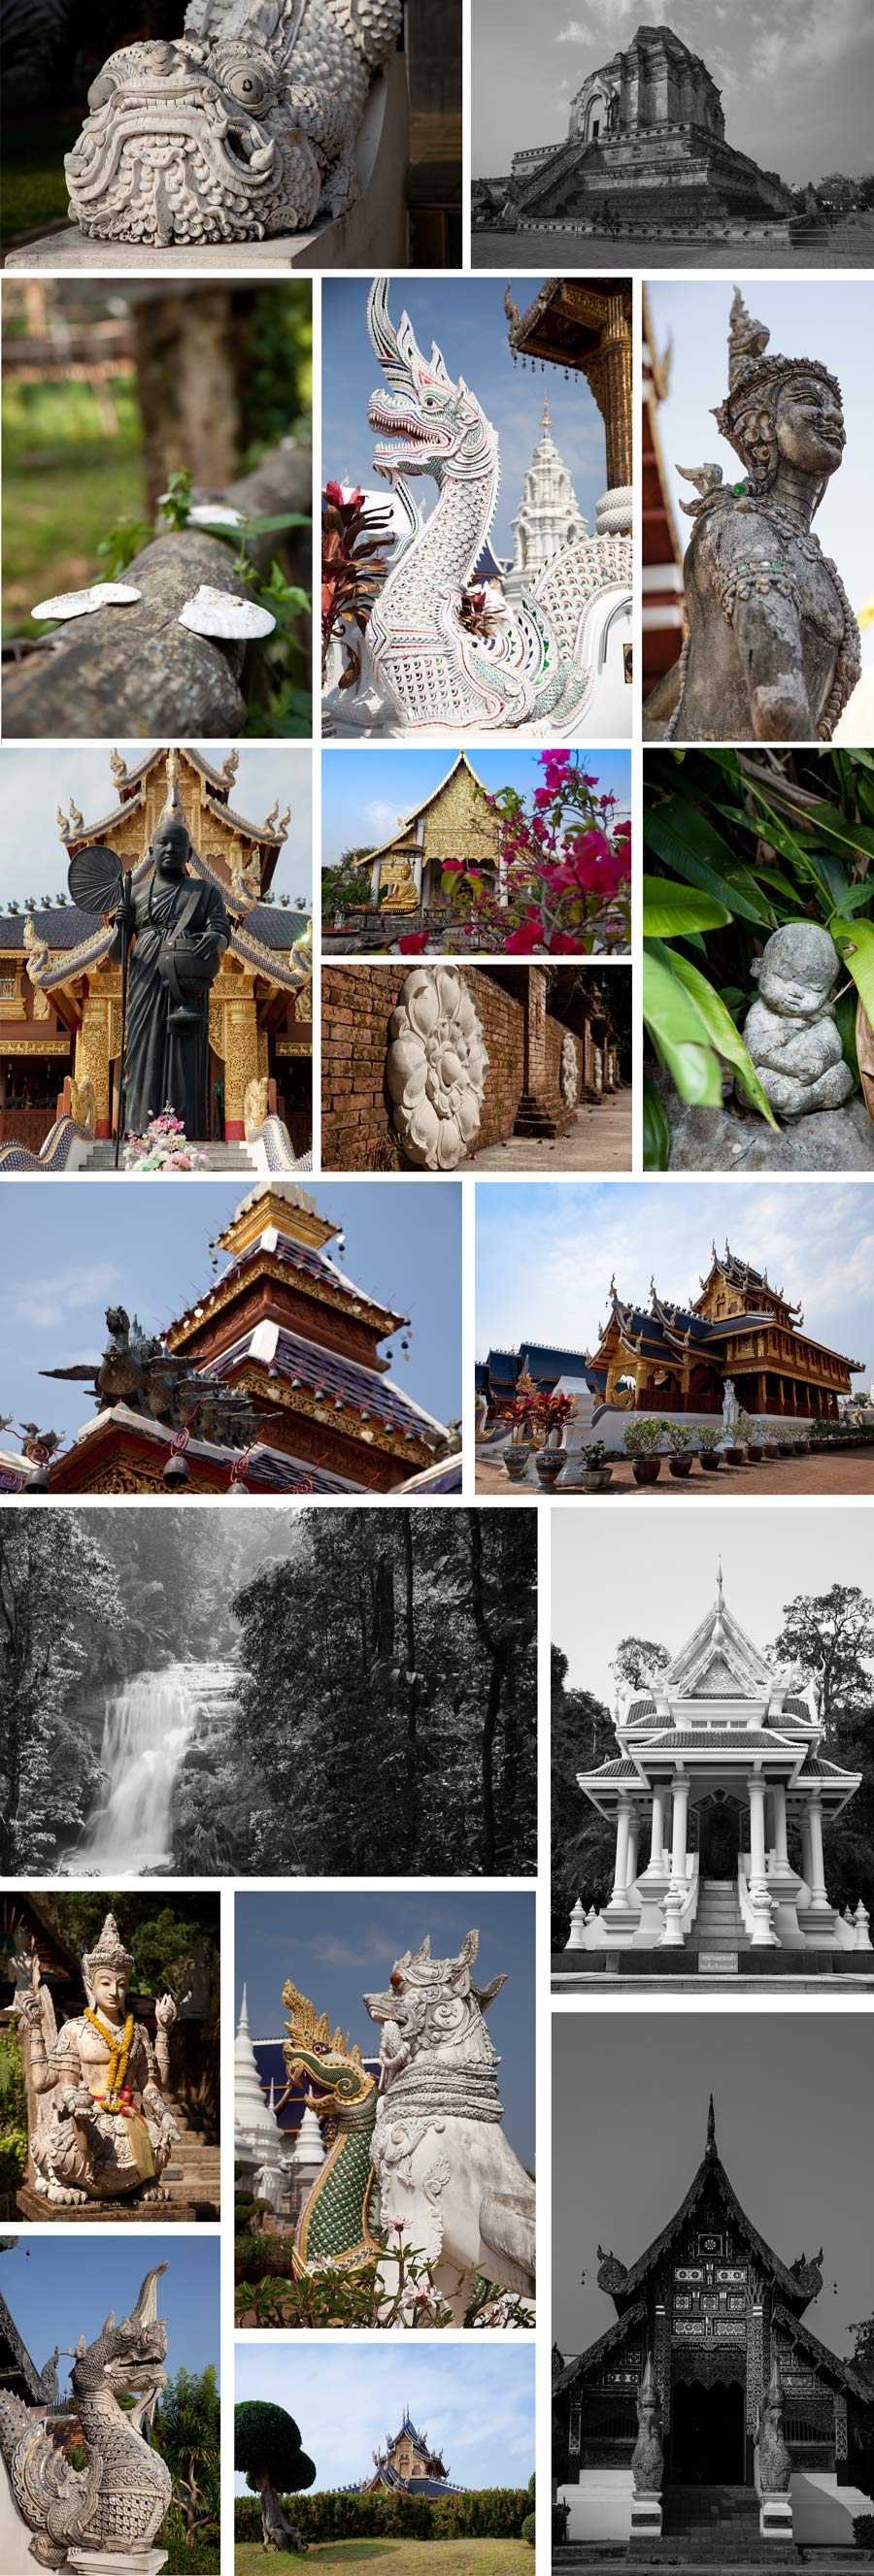 chiang mai_blackrabbitphotography_travel.jpg